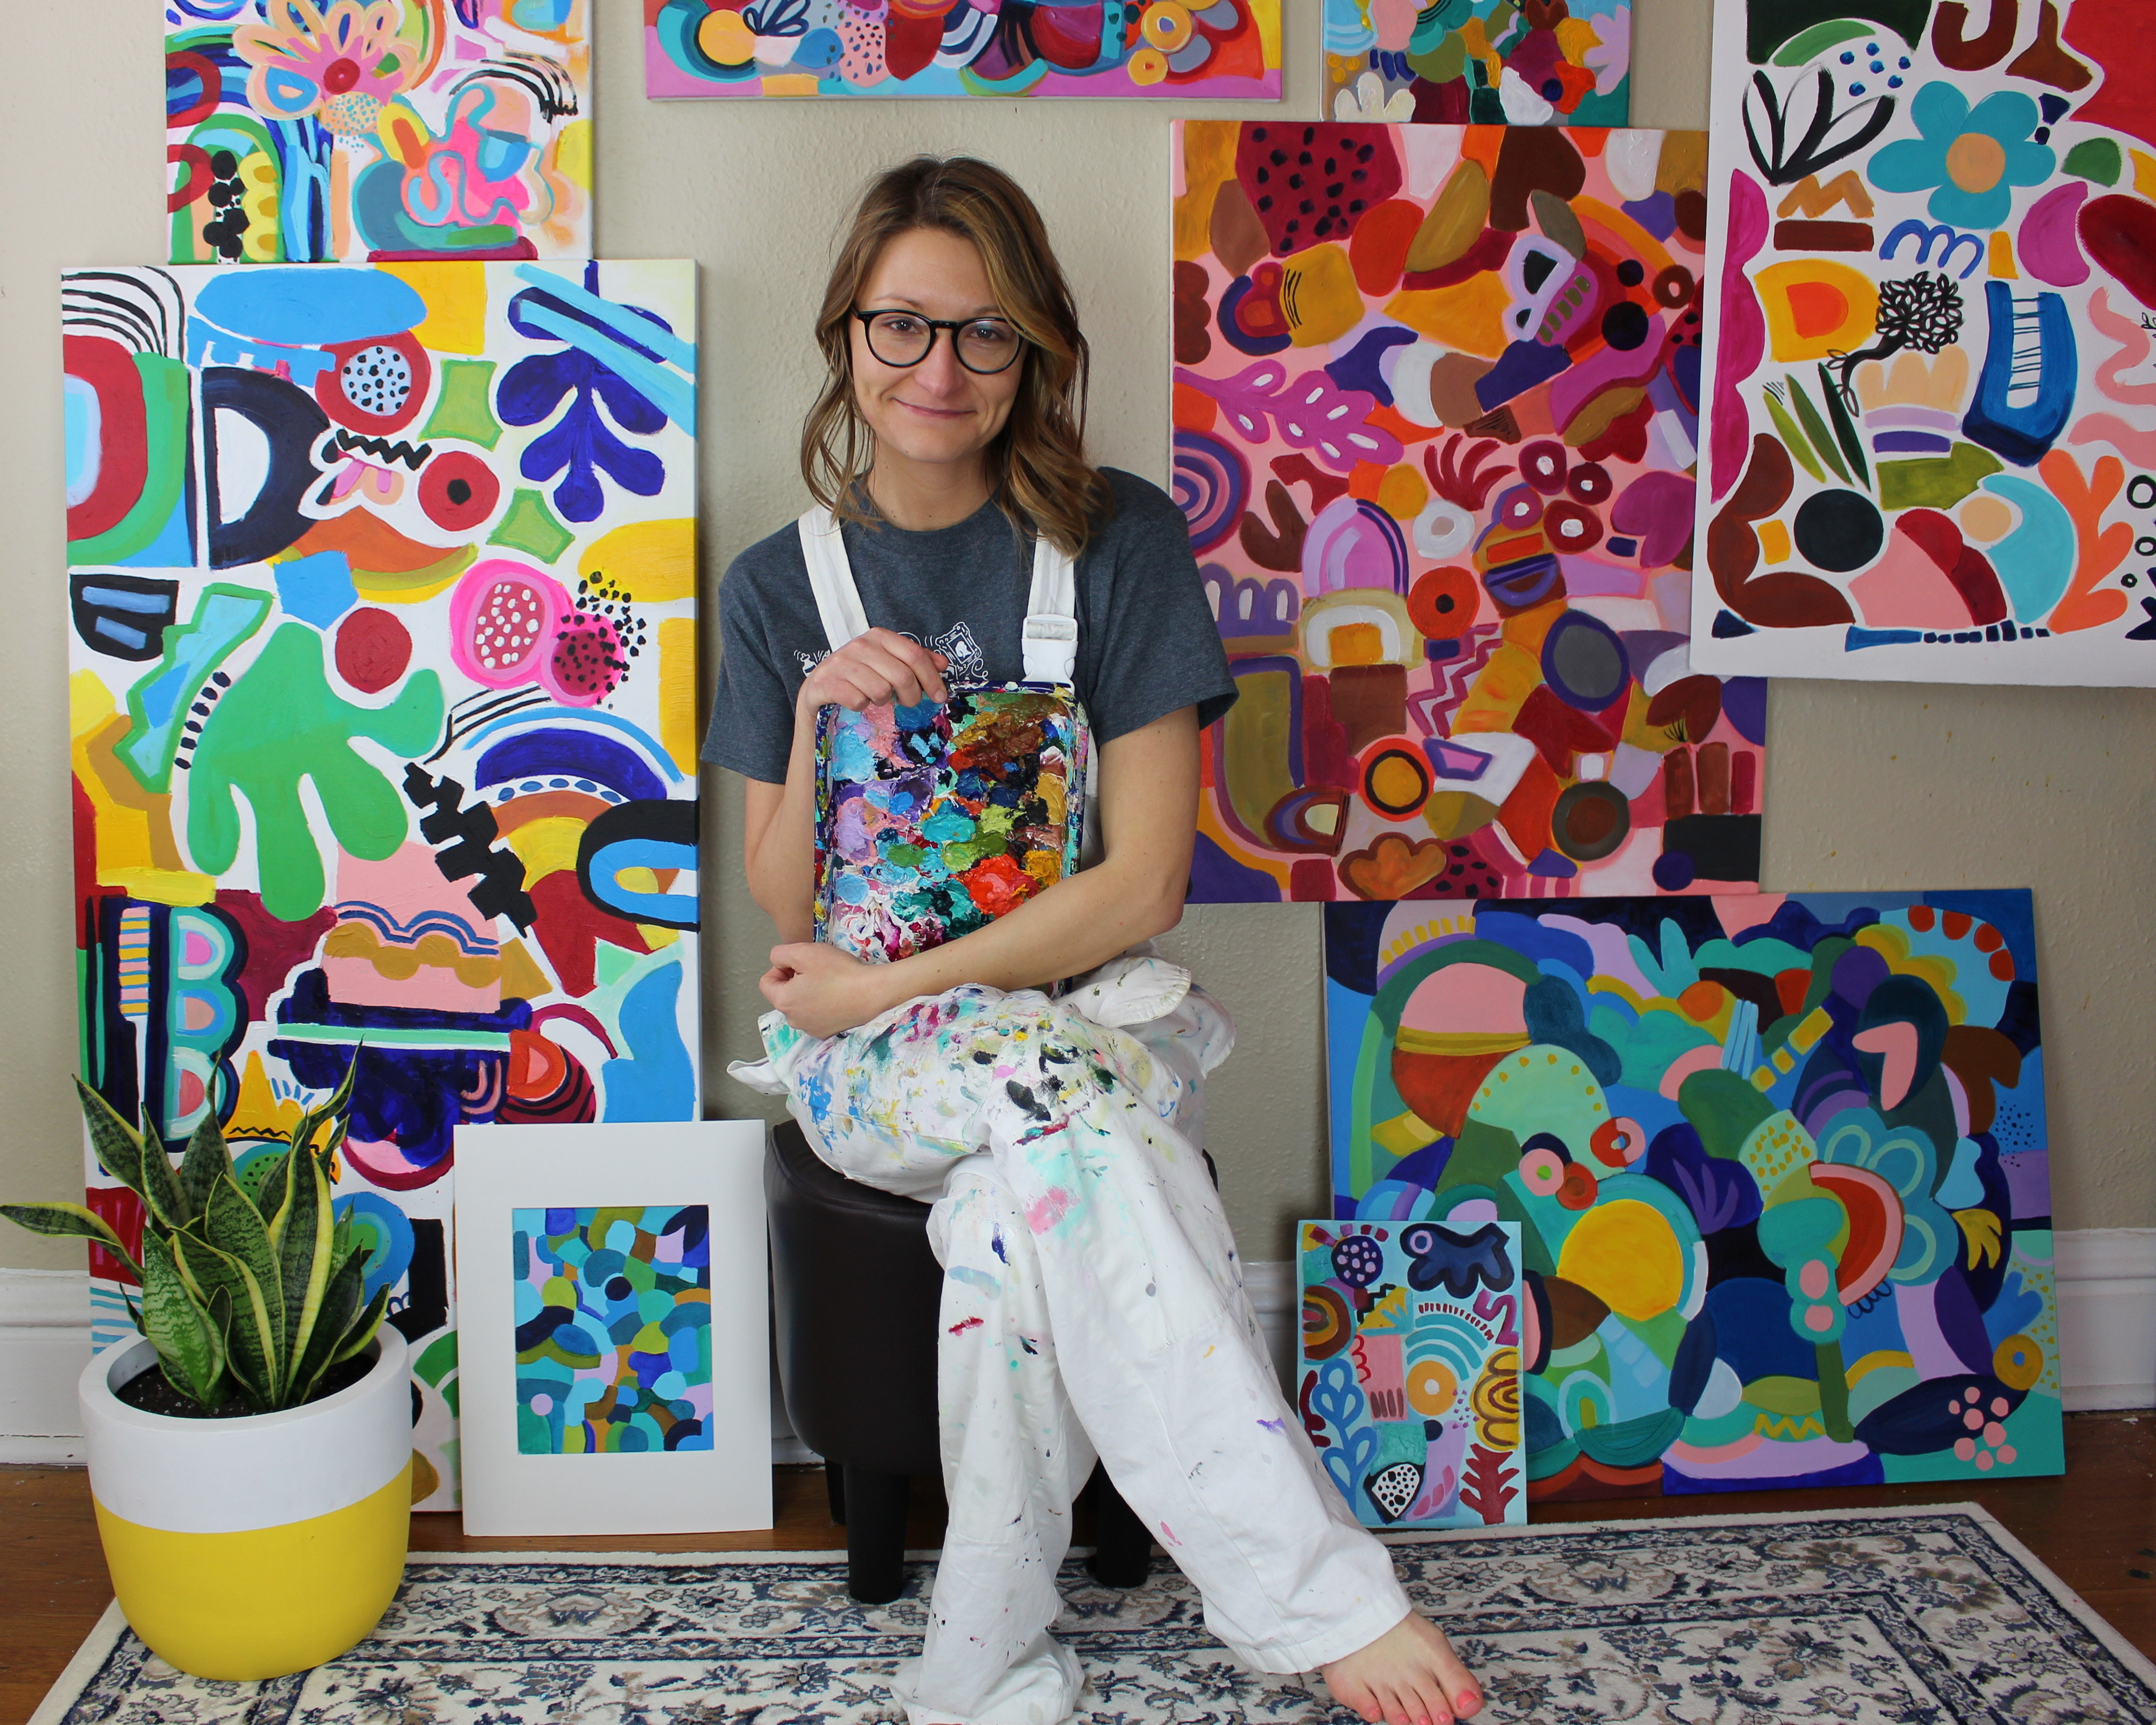 #89 Jessica Hitchcock: Creating Paintings Filled with Joy